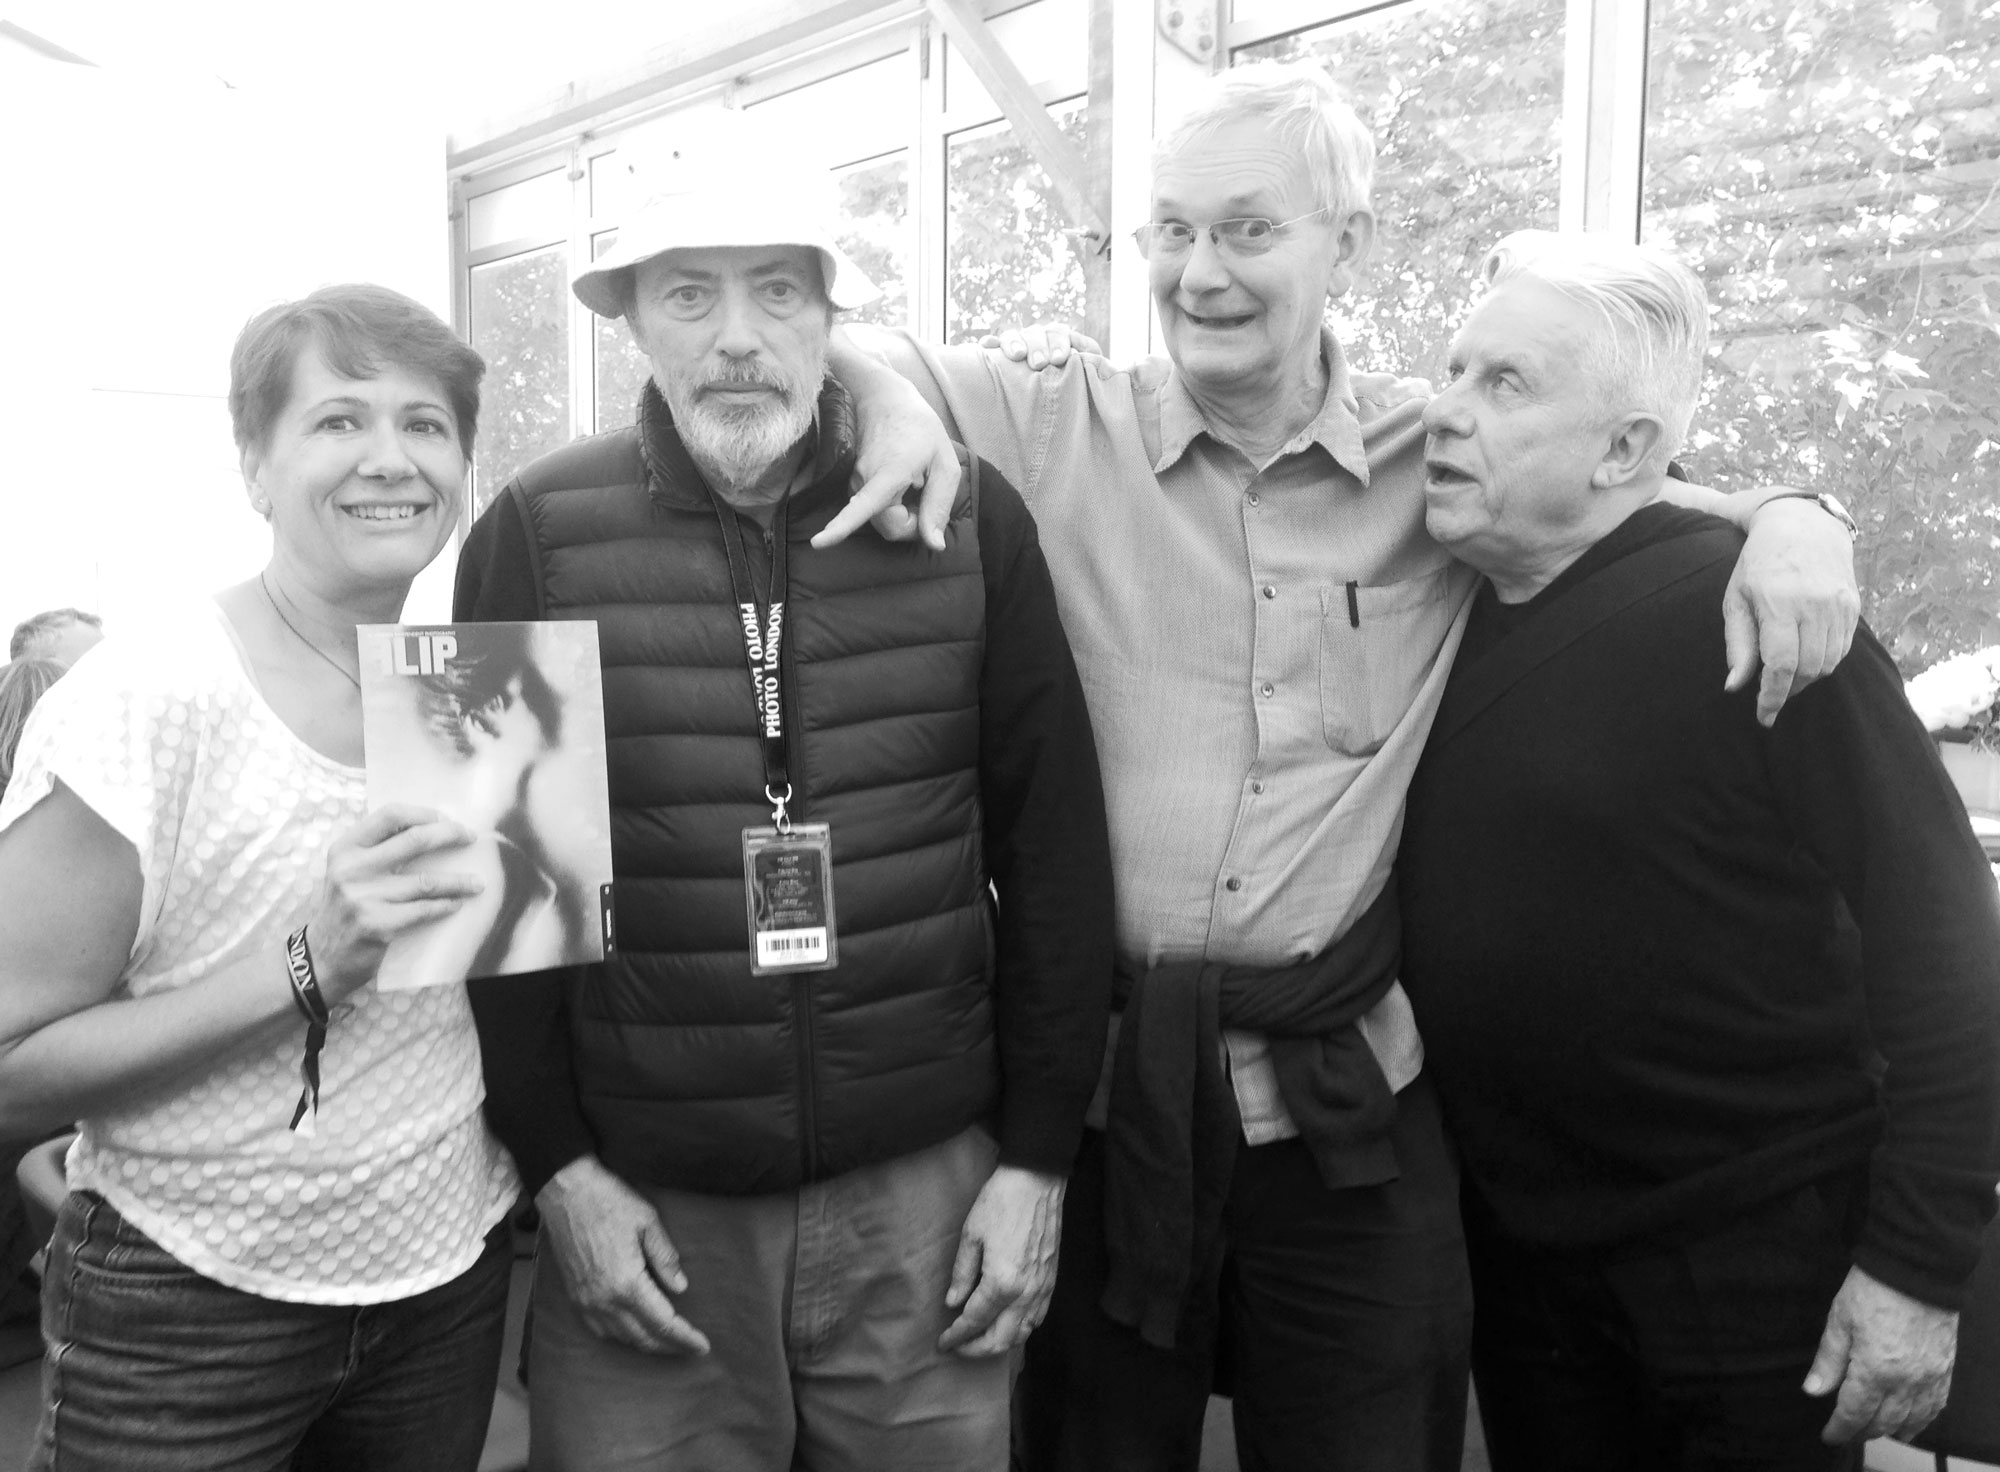 Hobnobbing with Martin Parr, Brian Griffin, and Bruce Gilden